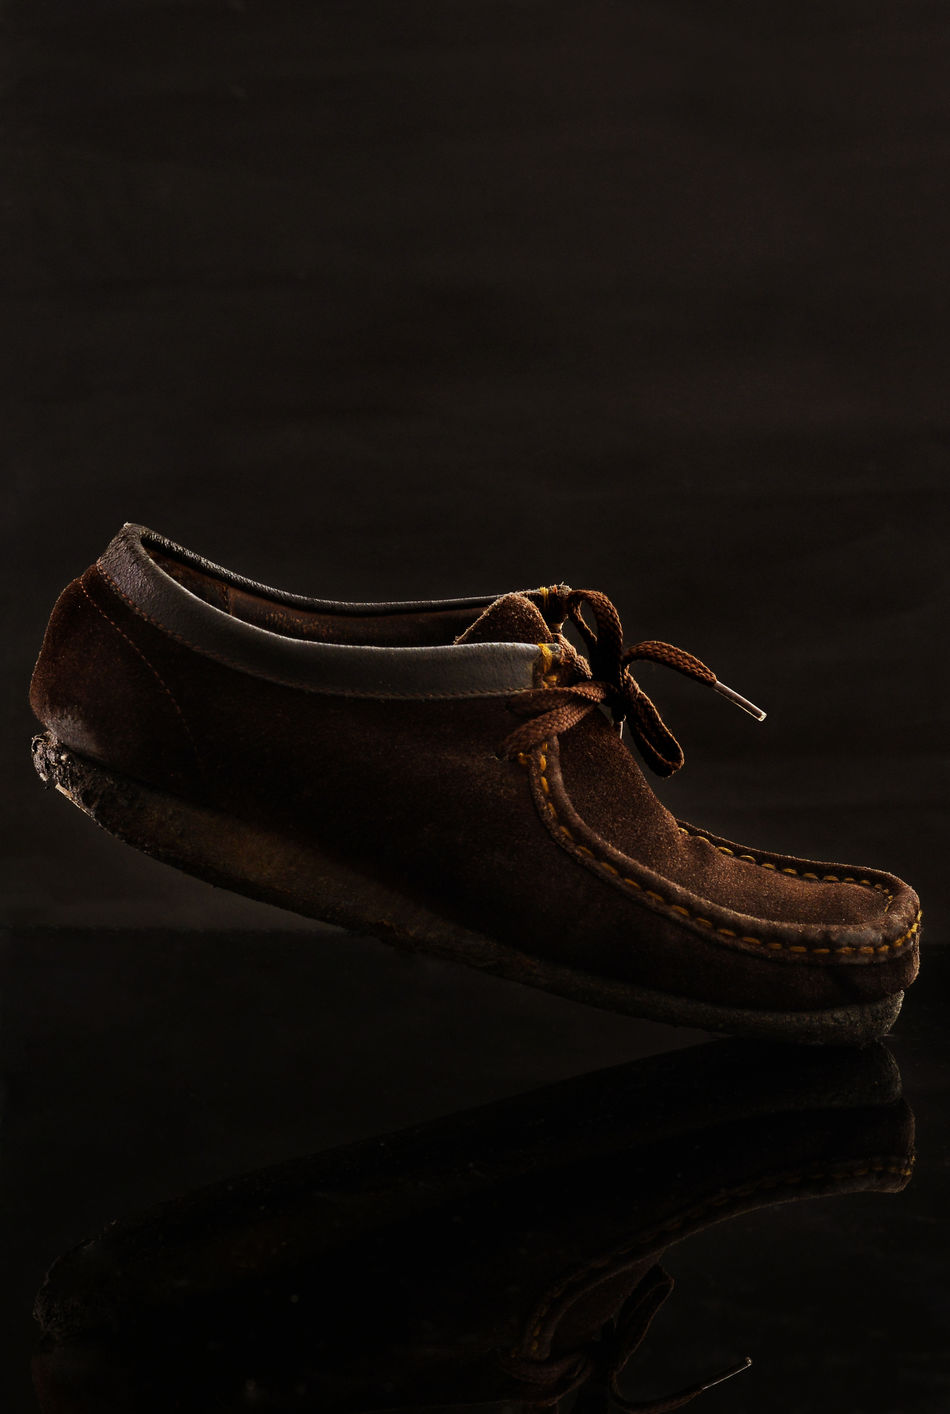 Black Background Brown Leather Shoes Shoes